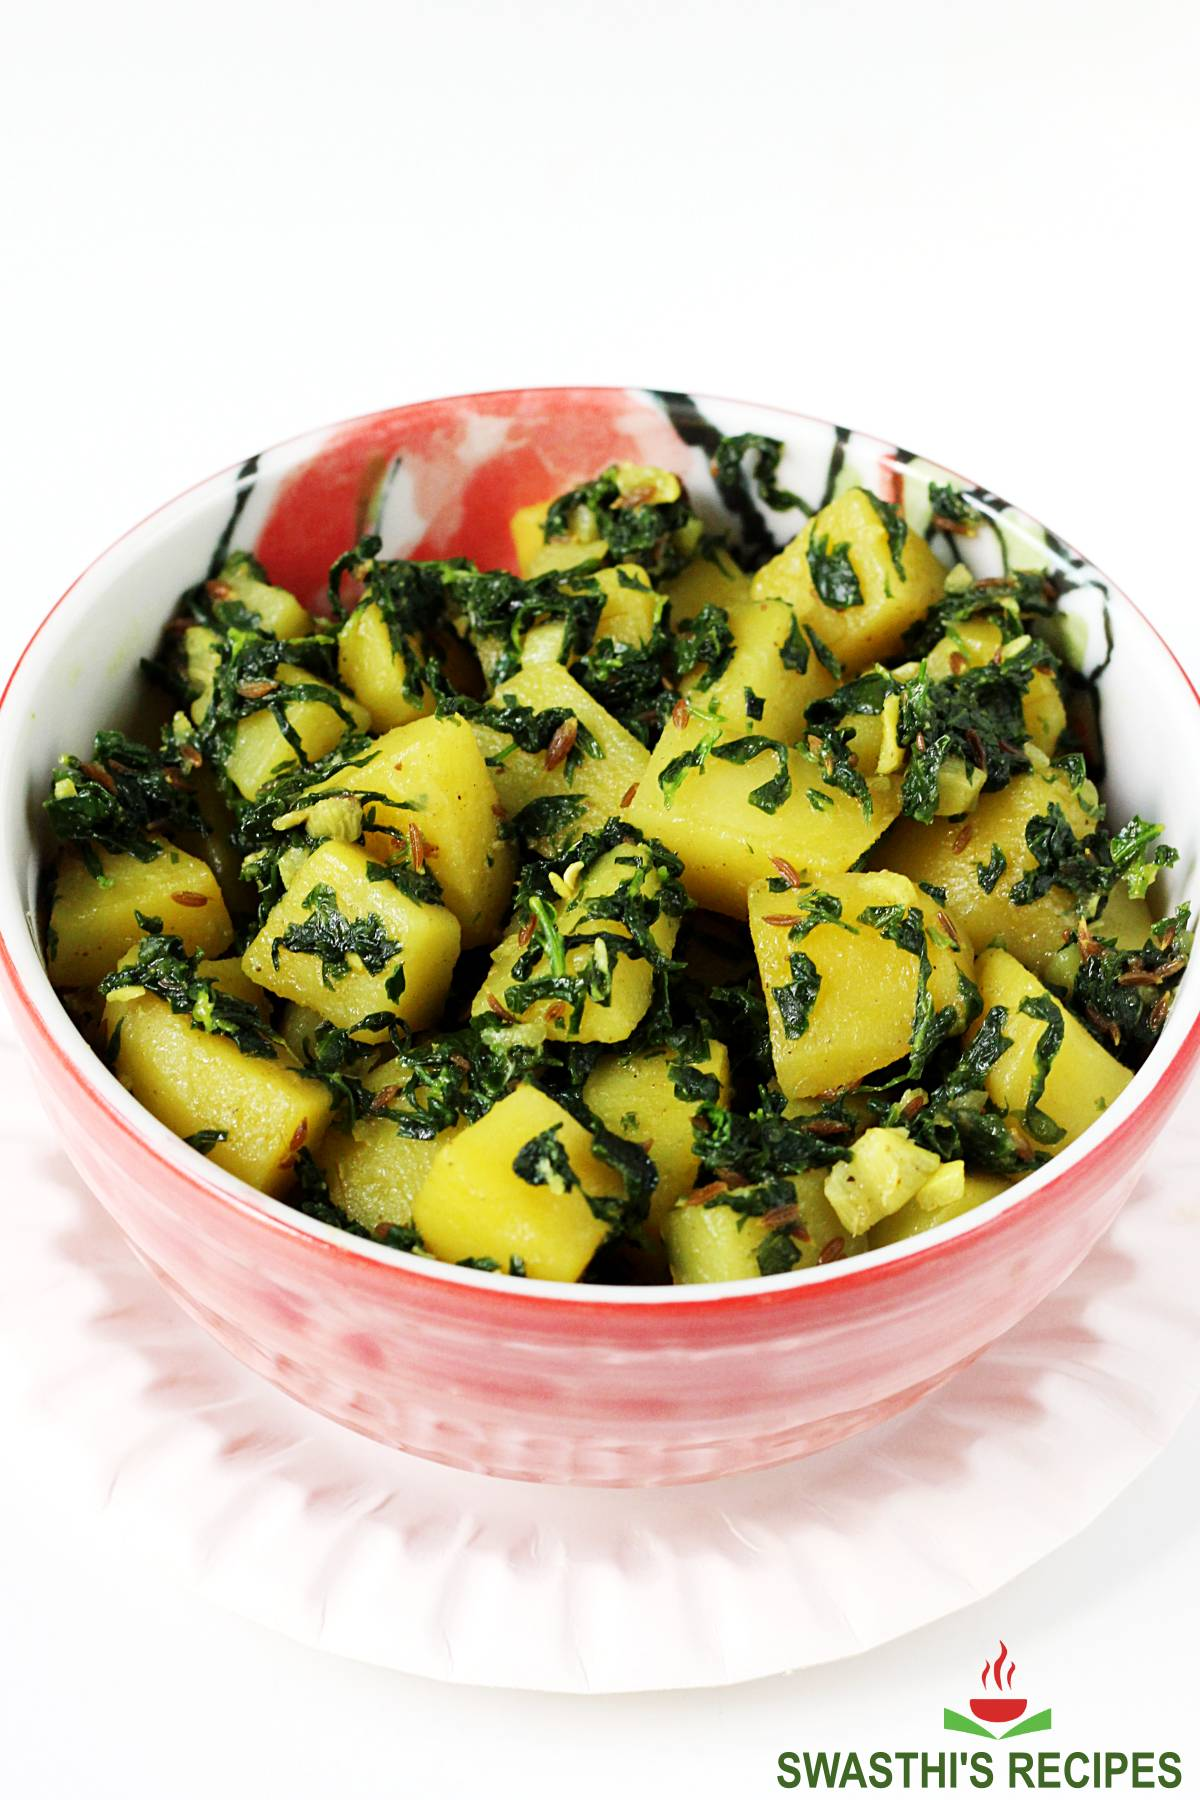 aloo methi served in a bowl